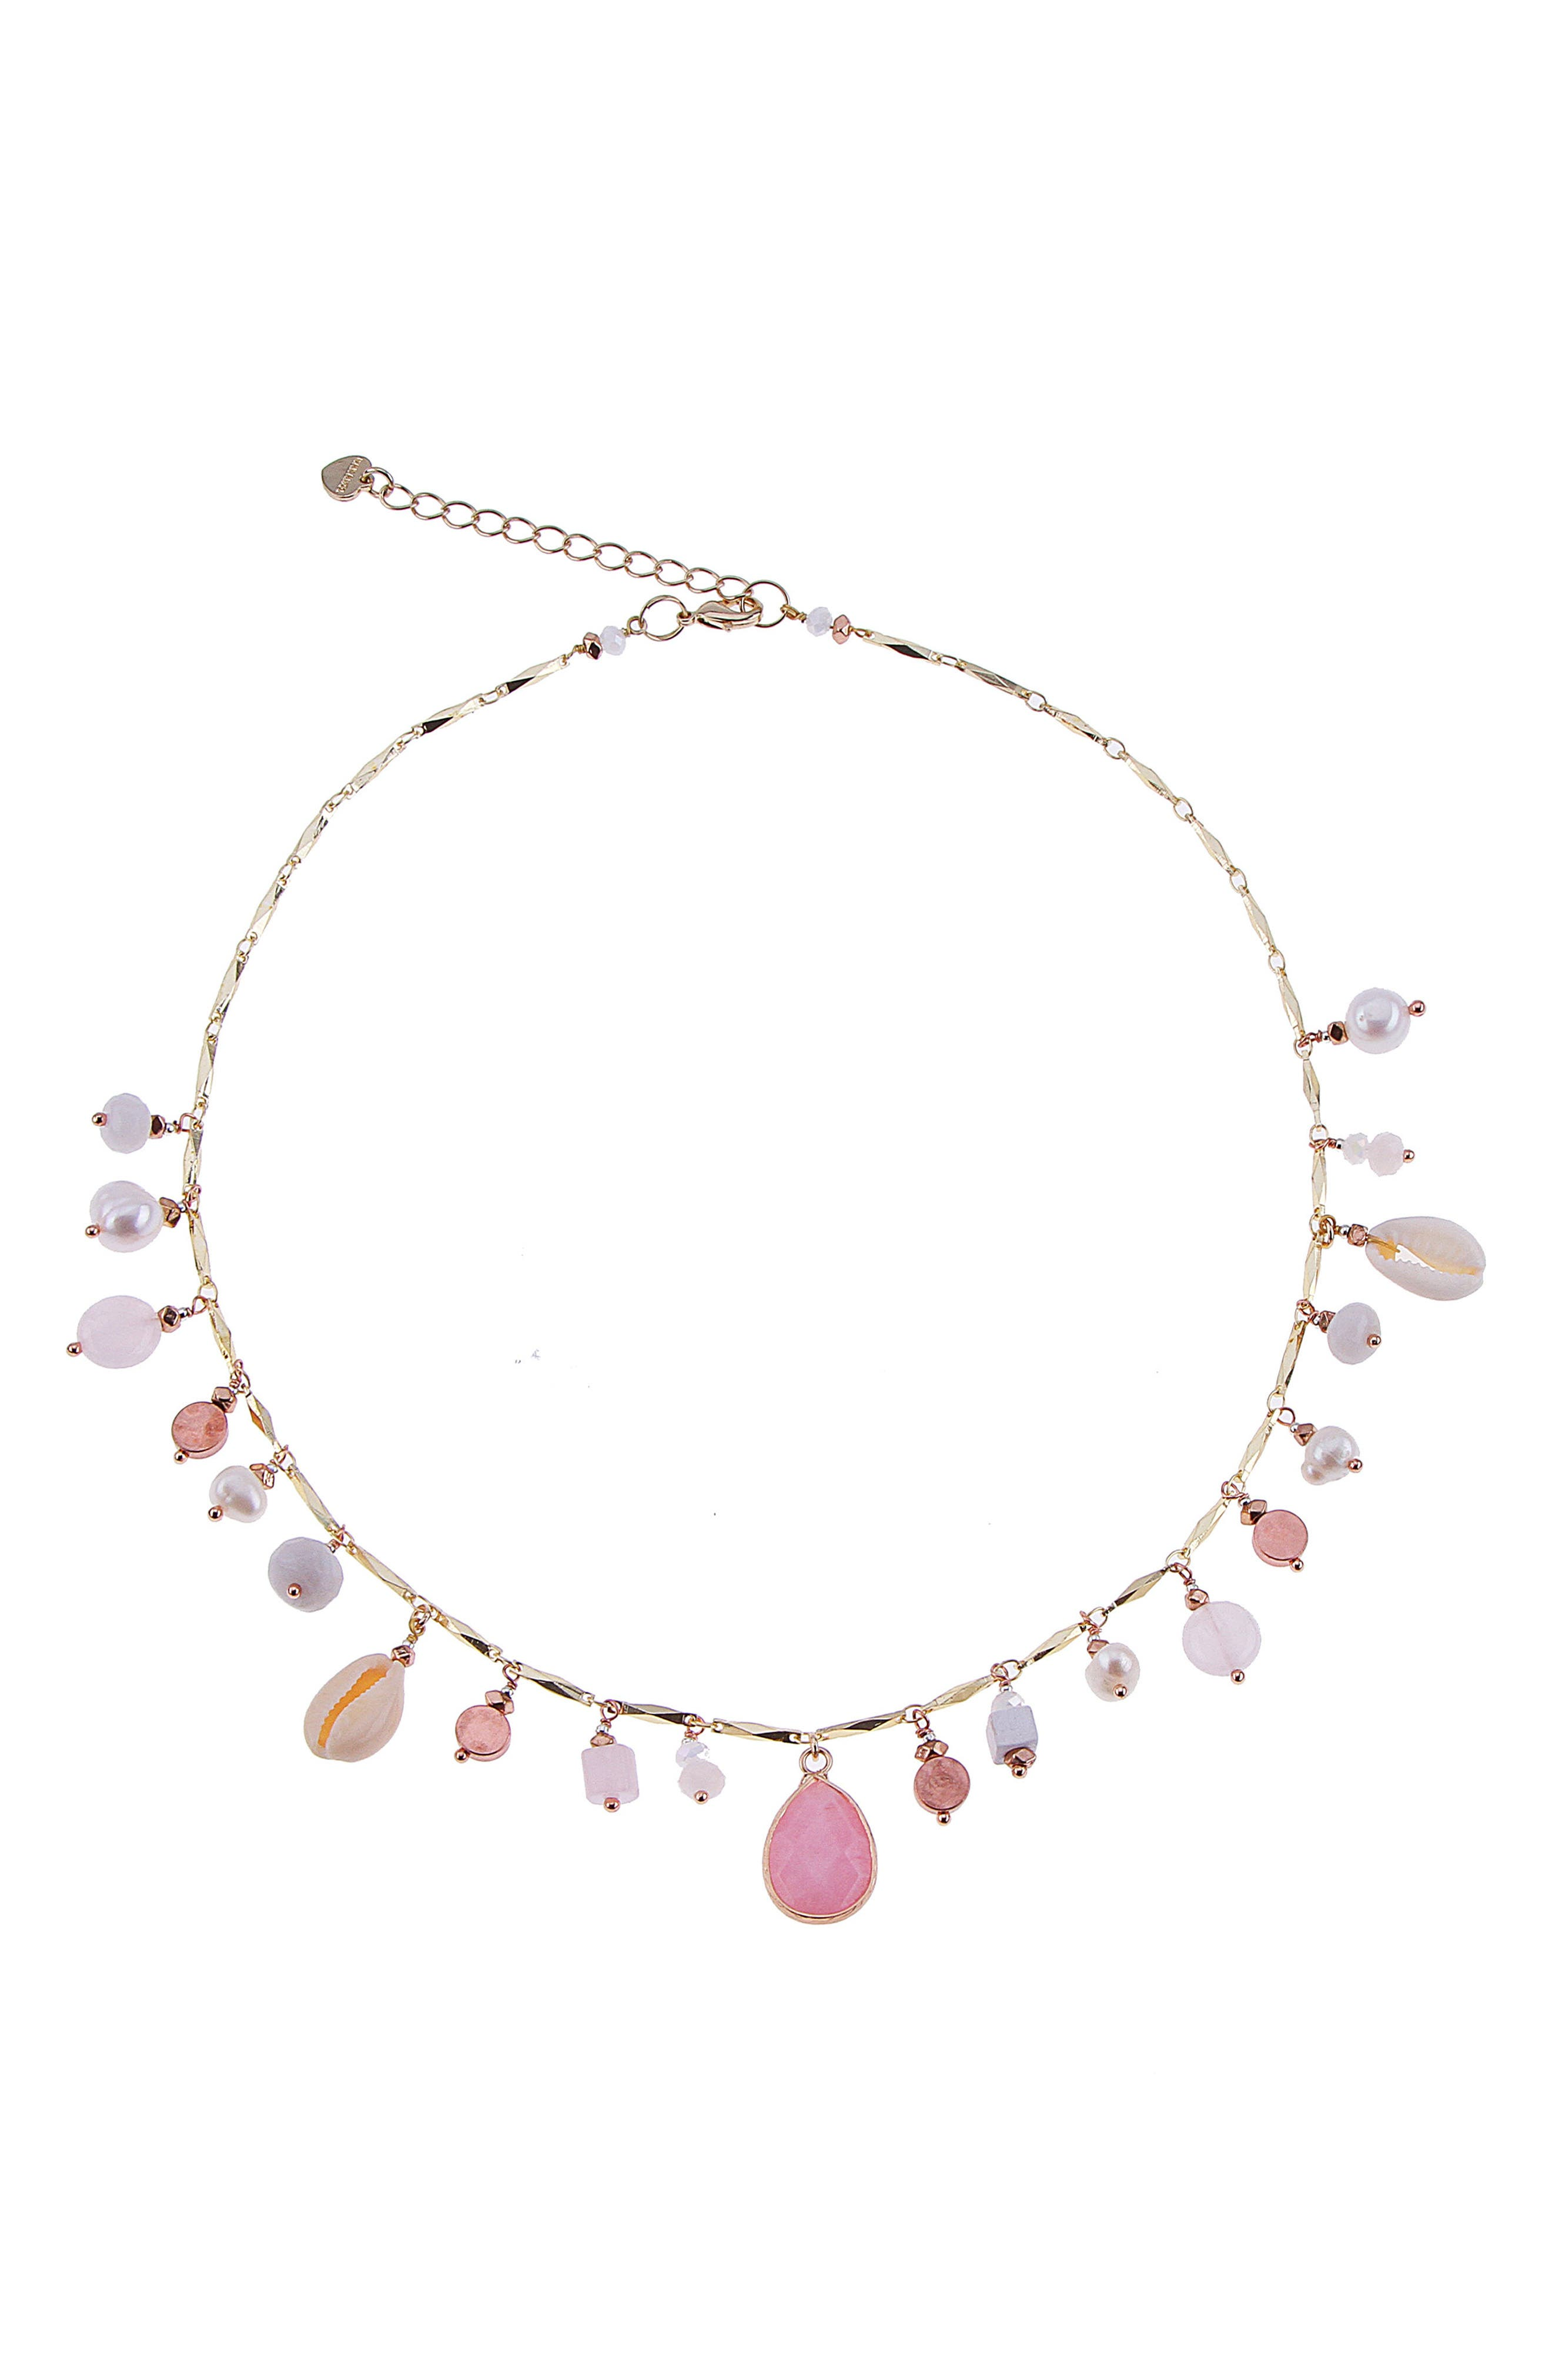 Dainty Stone Freshwater Pearl, Agate & Moonstone Charm Necklace,                         Main,                         color, White